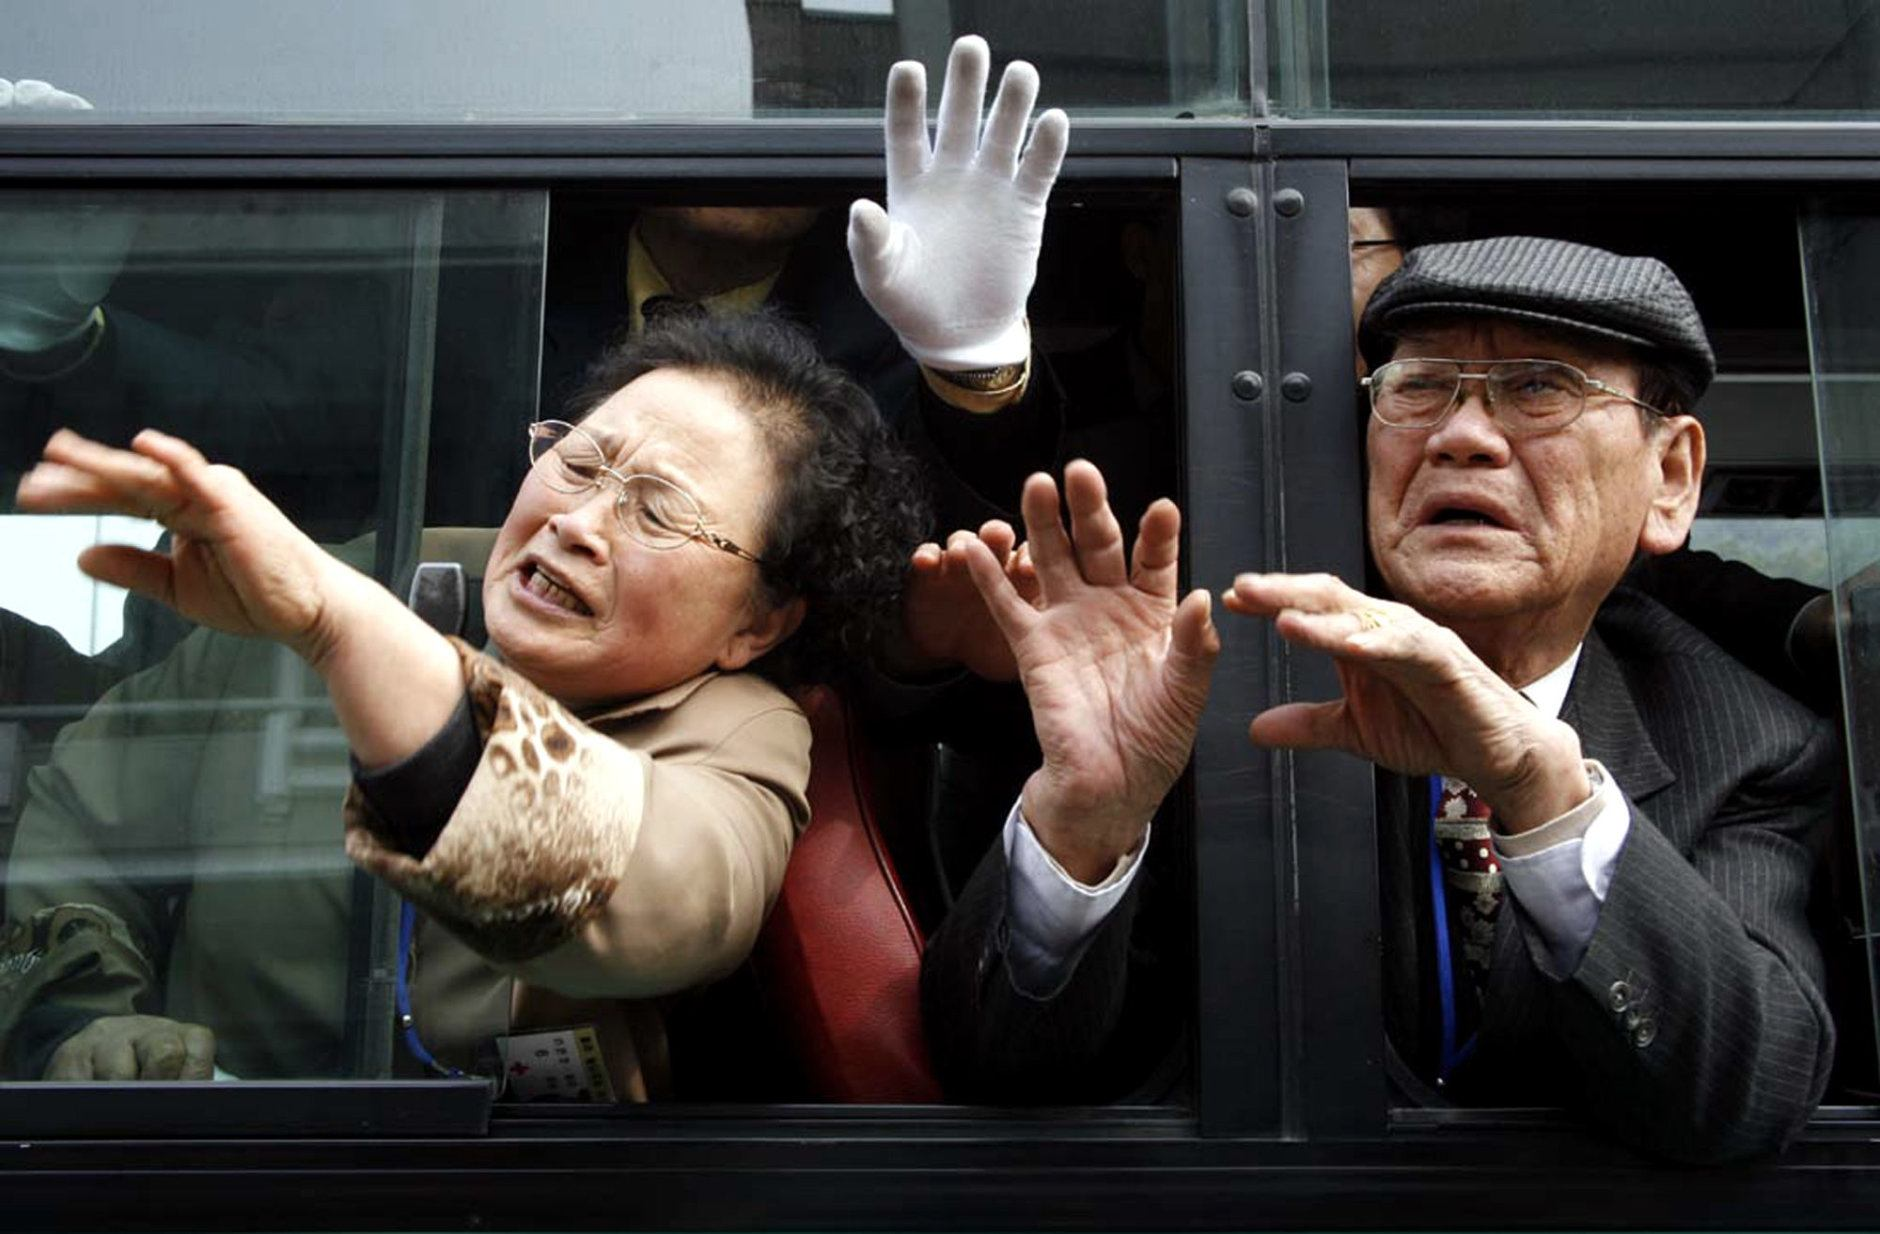 South Korean visitors in a bus wave to their North Korean relatives before they return to South Korea after the 13th Separated Family Reunion Meeting at Diamond Mountain in North Korea, Wednesday, March 22, 2006. About 150 South Koreans began a three-day reunion program at North Korea's Diamond Mountain resort on Monday, meeting with their North Korean relatives for the first time in more than half a century.(AP Photo/Munhwa Ilbo, Lim Jung-jyun, Korea Pool)  **KOREA OUT**